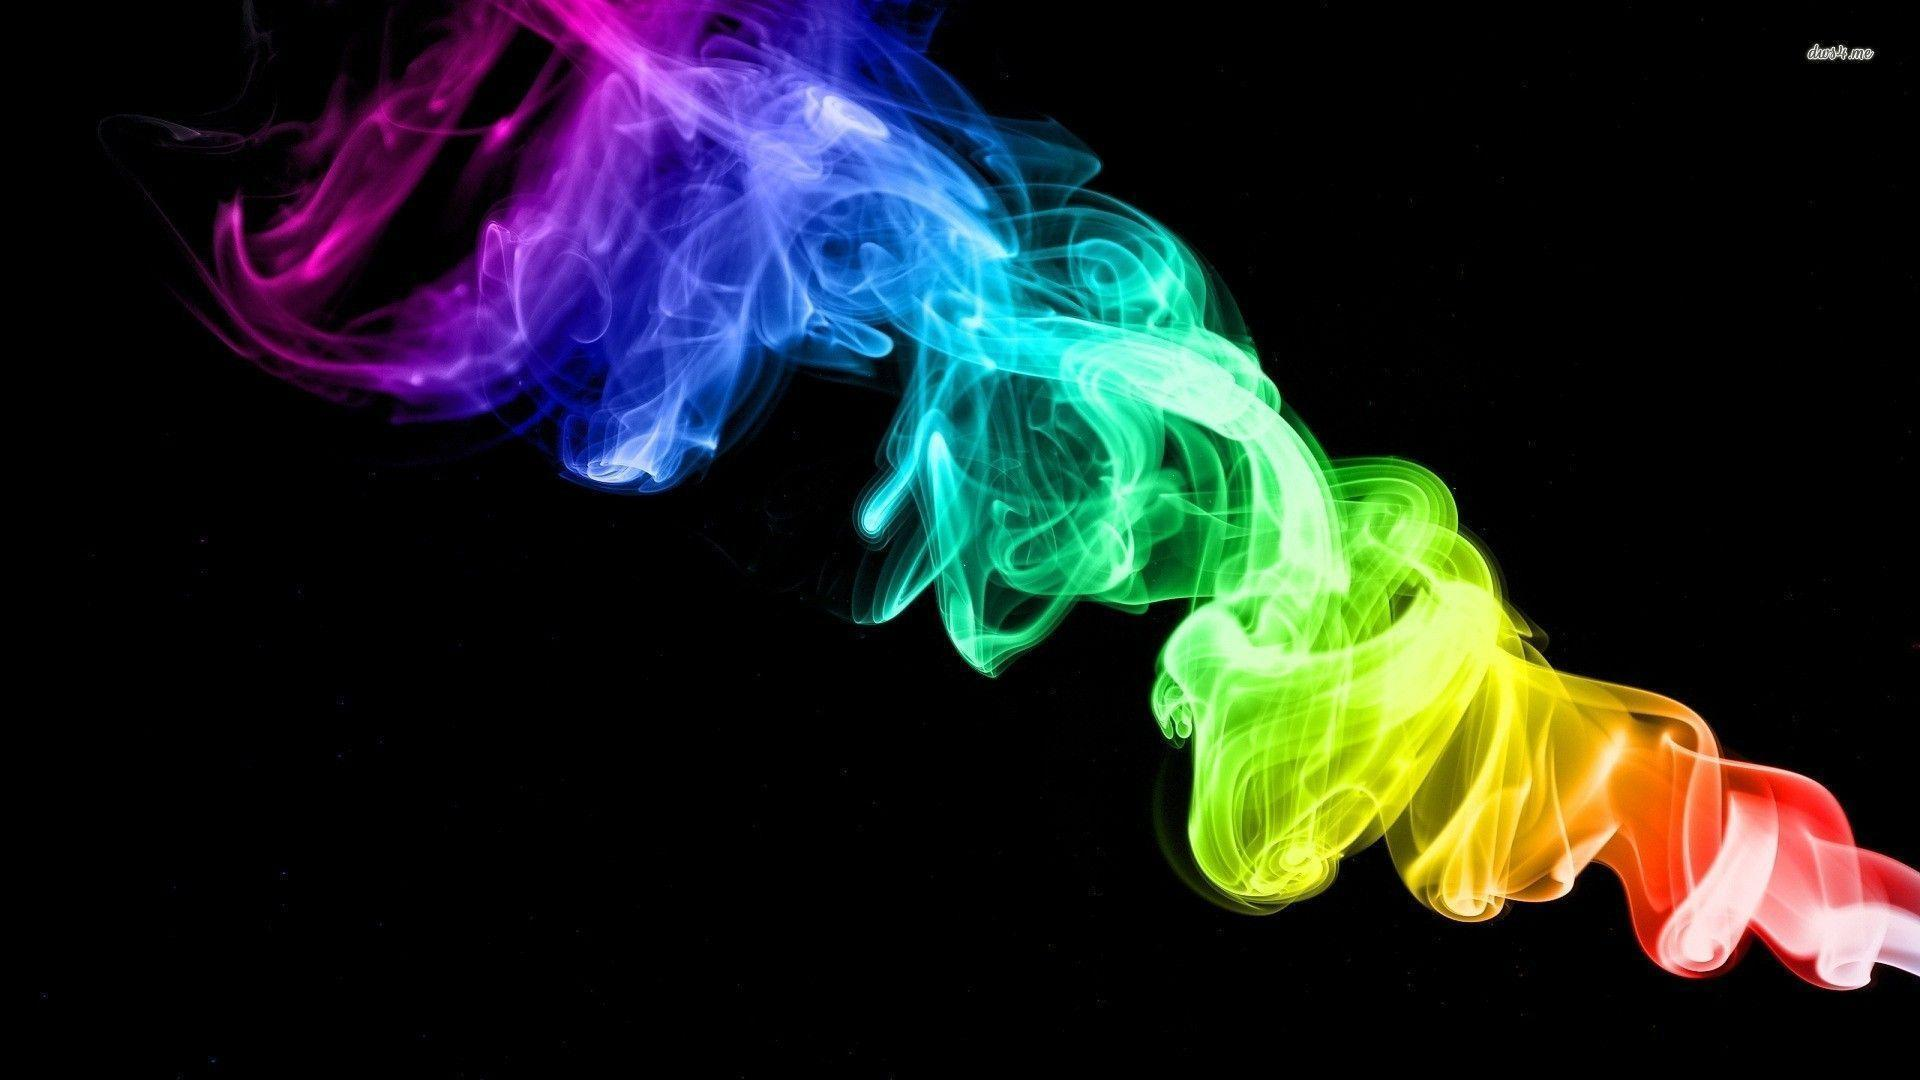 Awesome Neon Backgrounds 1920x1080